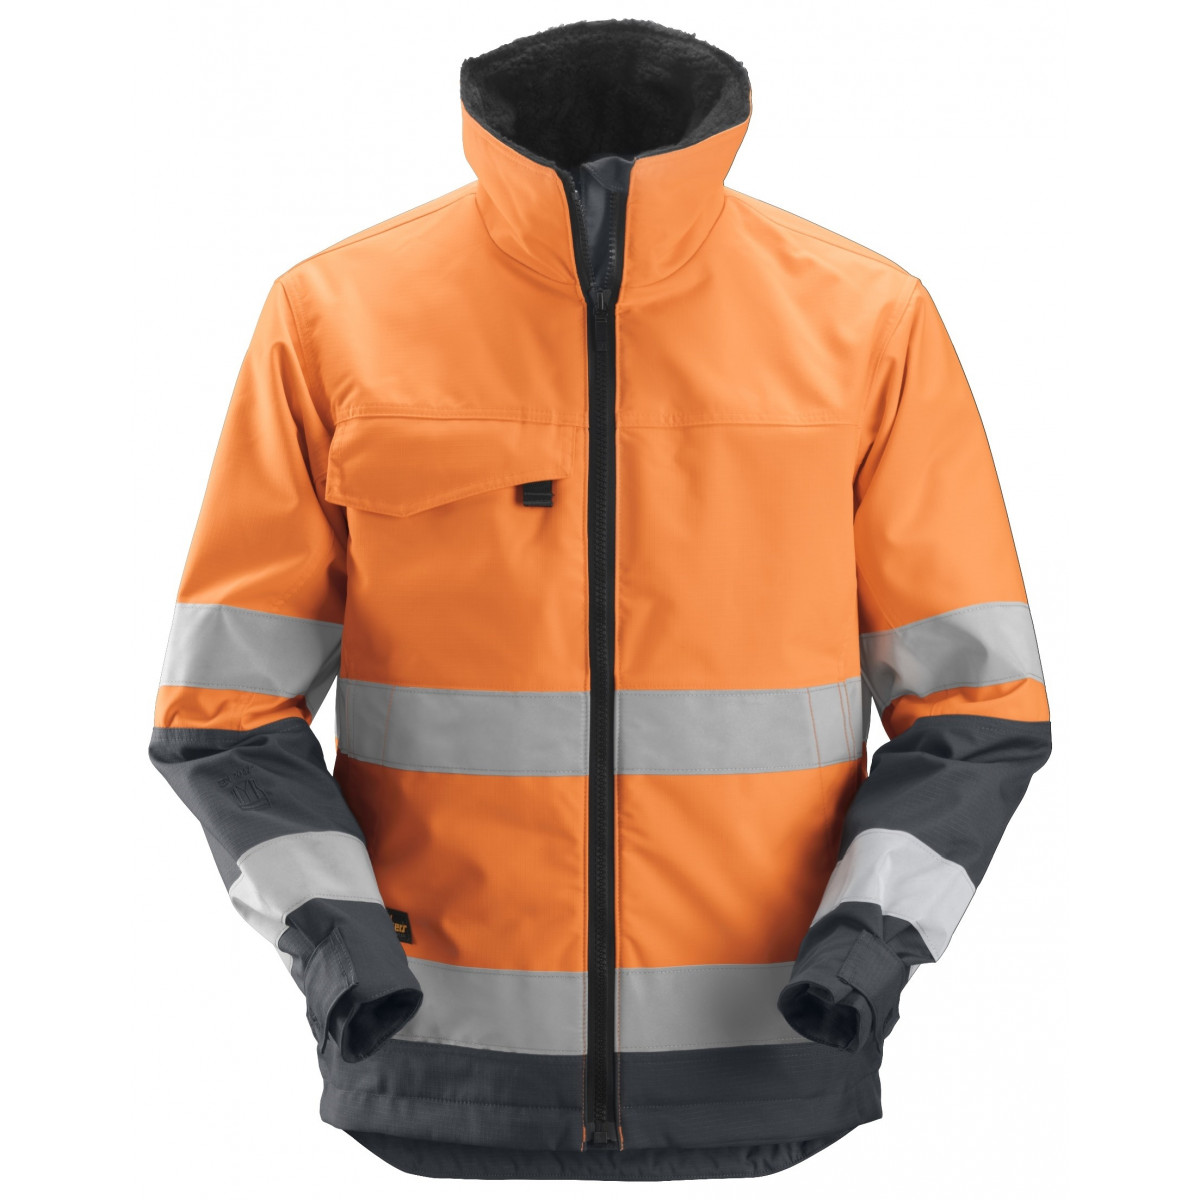 03f6dd7b1306 Snickers 1138 Core Hi-Vis Insulated Jacket CL3